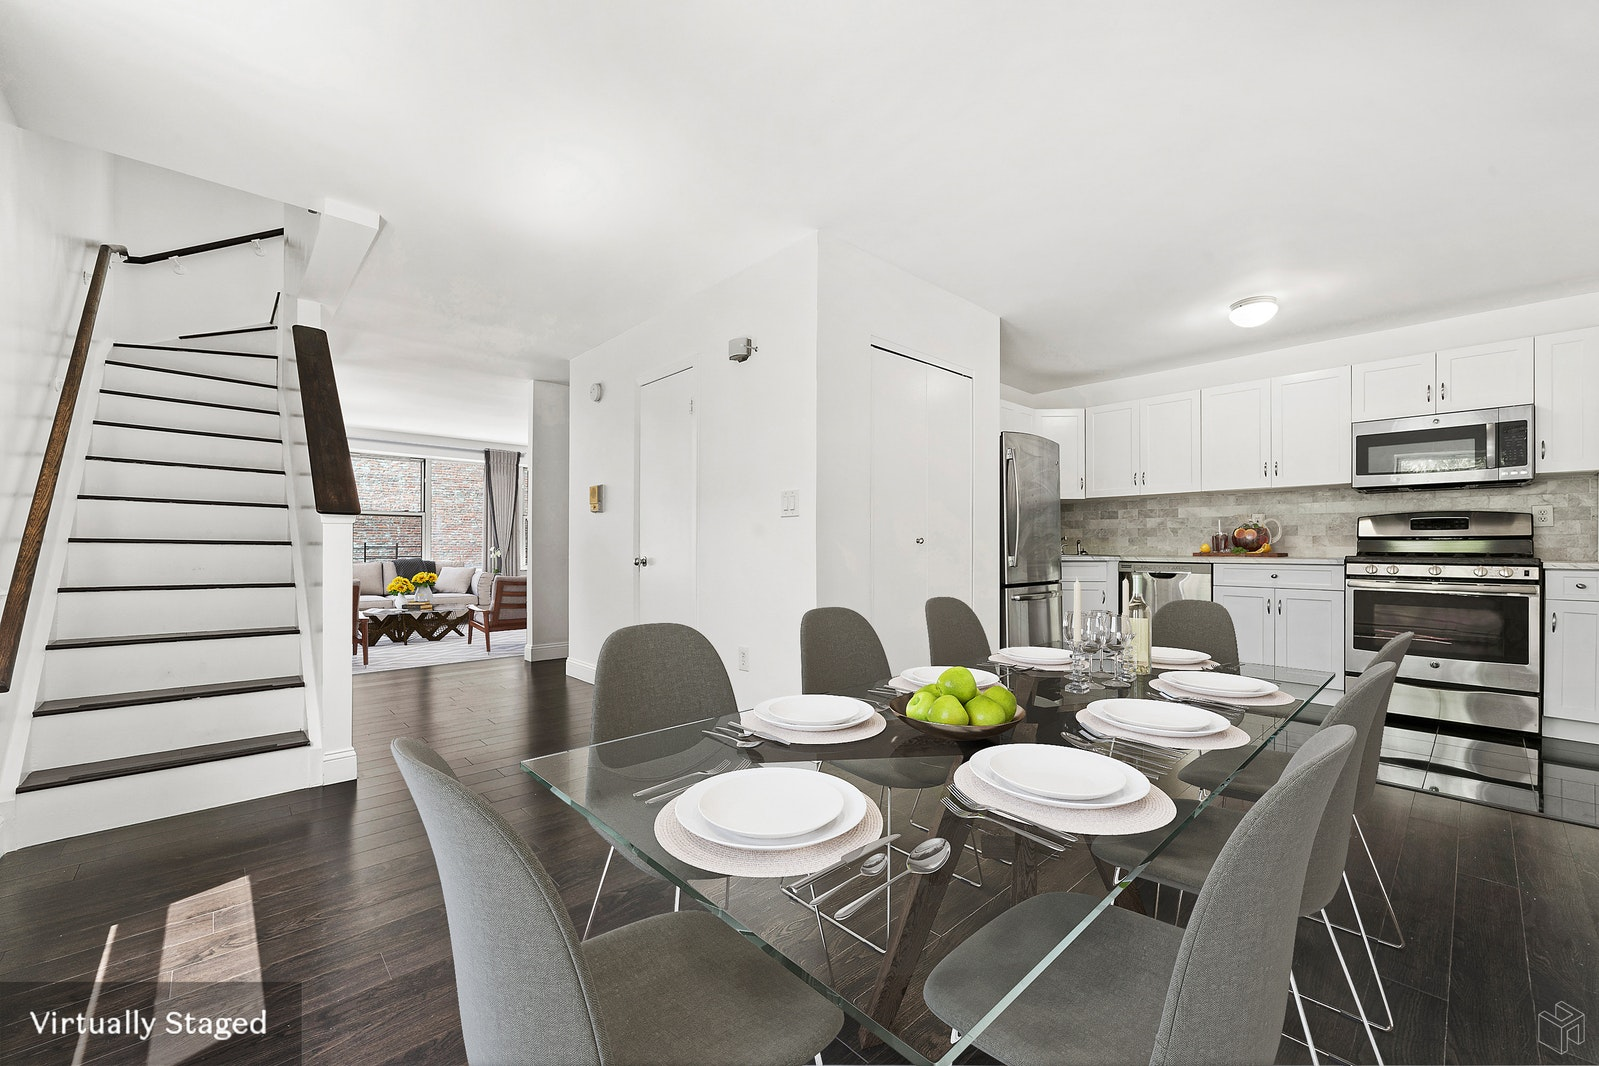 H-U-G-E 3 Br W/ Ultra Low CC'S & Taxes, Upper Manhattan, NYC, 10030, $1,249,000, Property For Sale, Halstead Real Estate, Photo 1